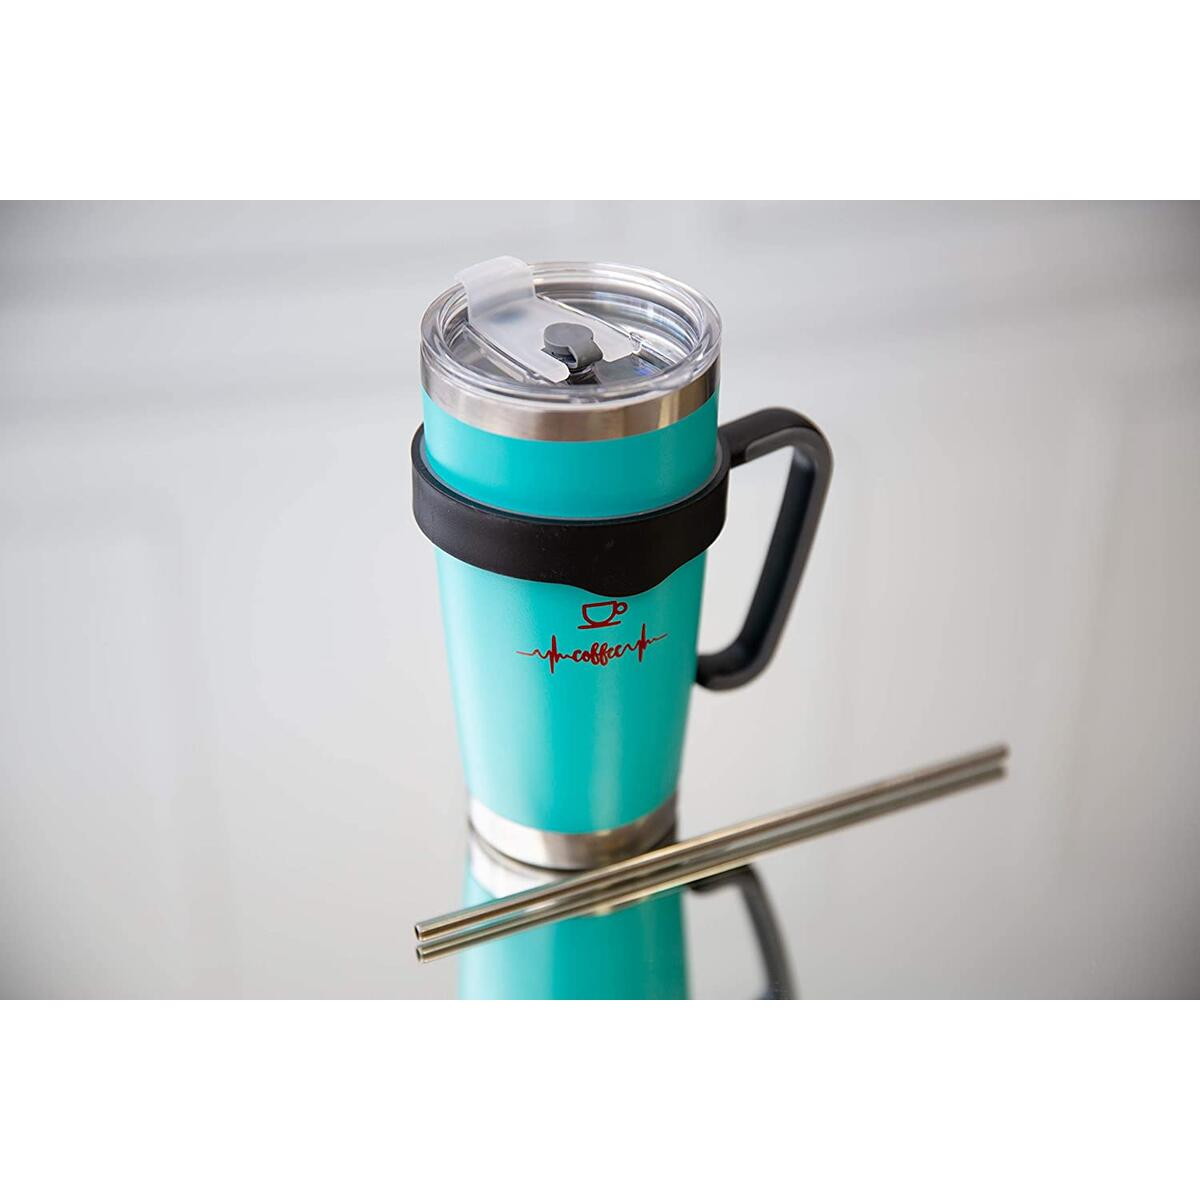 Maribus-FL 20 Oz Travel Tumbler with Lid, Handle, Straw, Straw Openning Stainless Steel Vacuum Insulated Coffee Tumbler, Mug for Women, Men